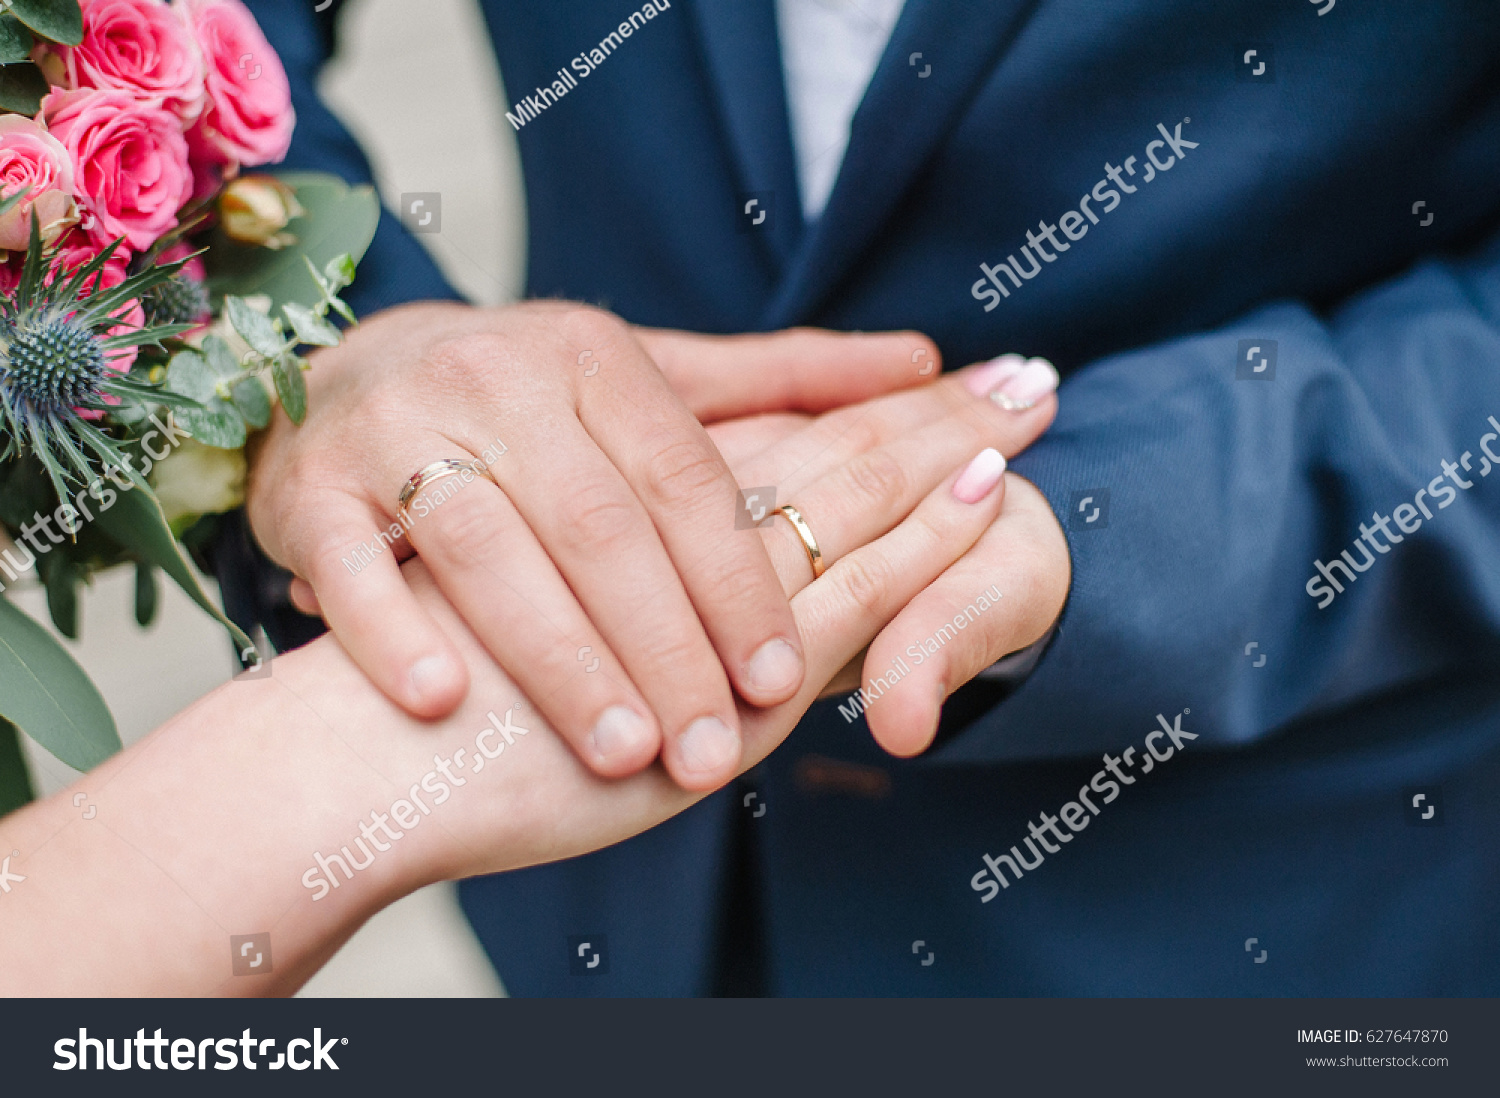 Hands Newlyweds Wedding Rings Hands Lie Stock Photo (Download Now ...